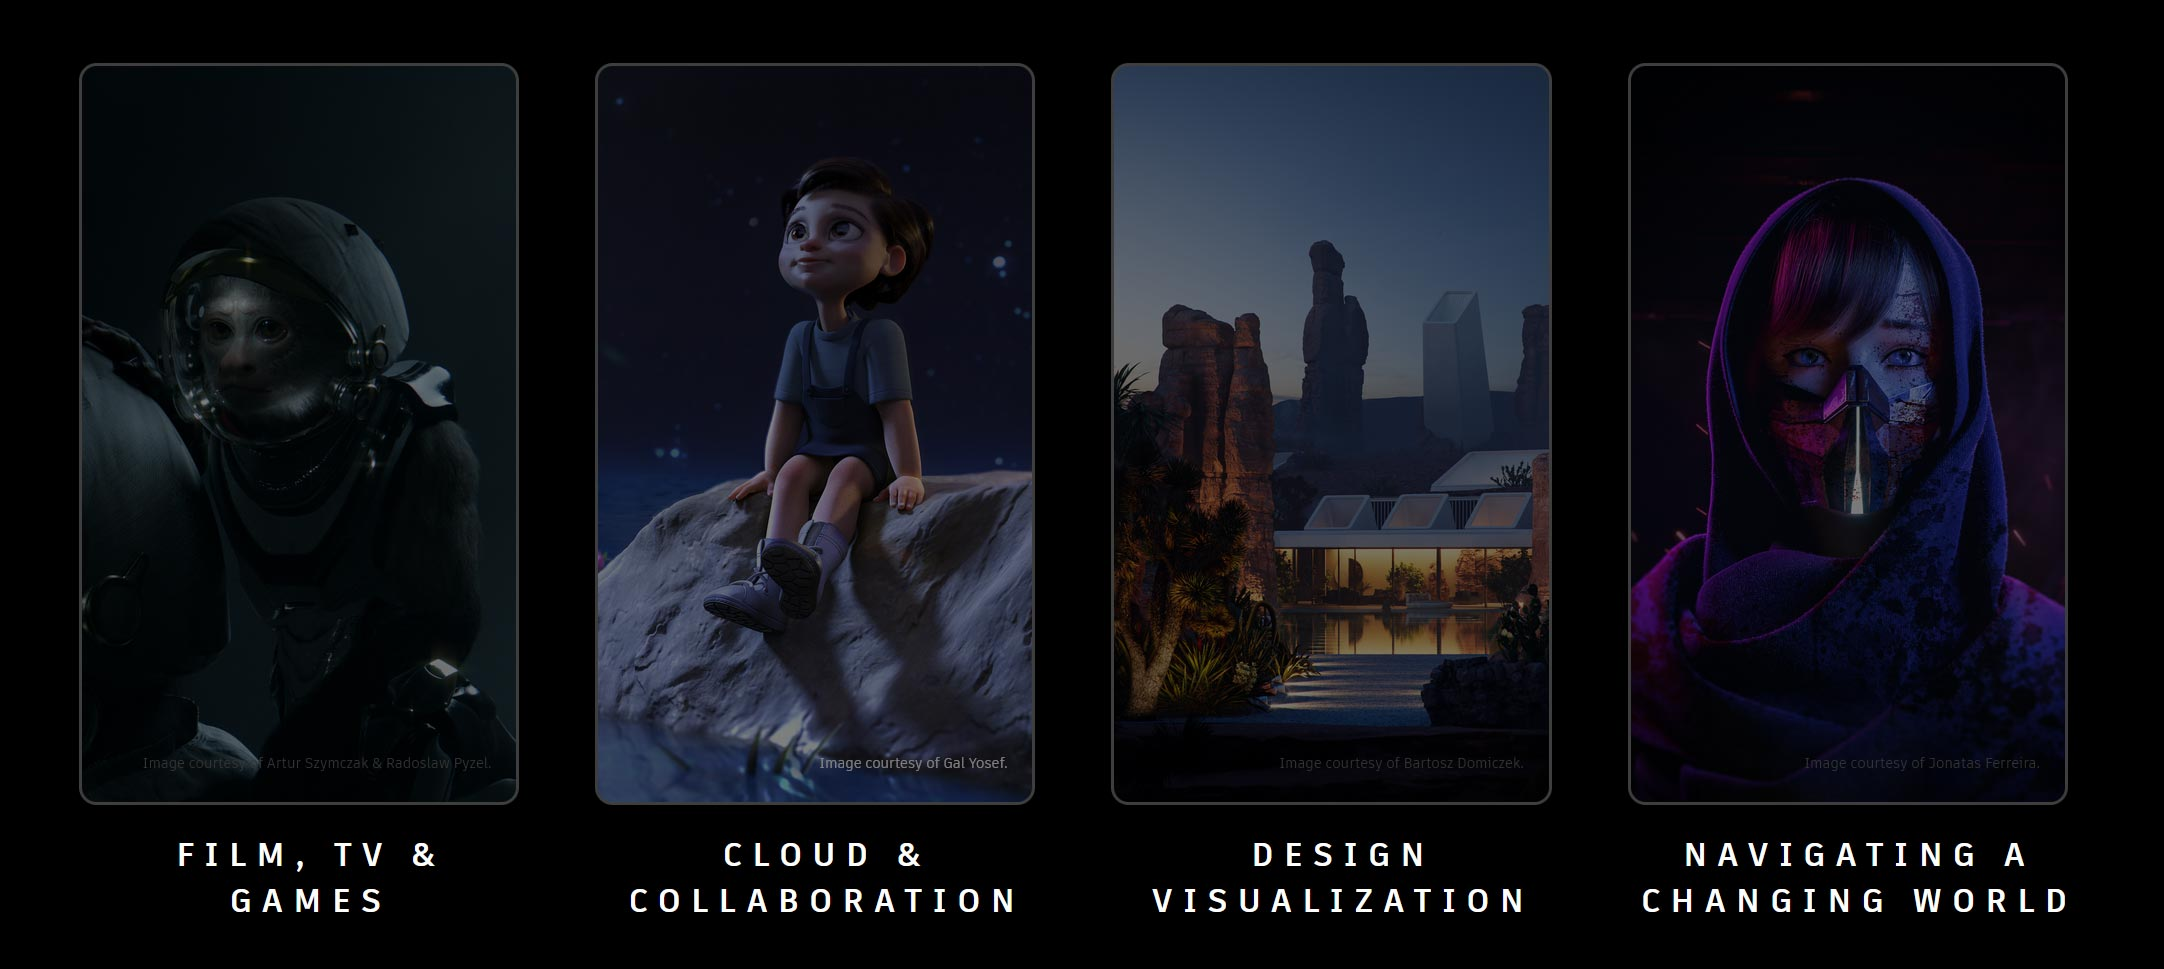 Autodesk Vision Series goes virtual this September